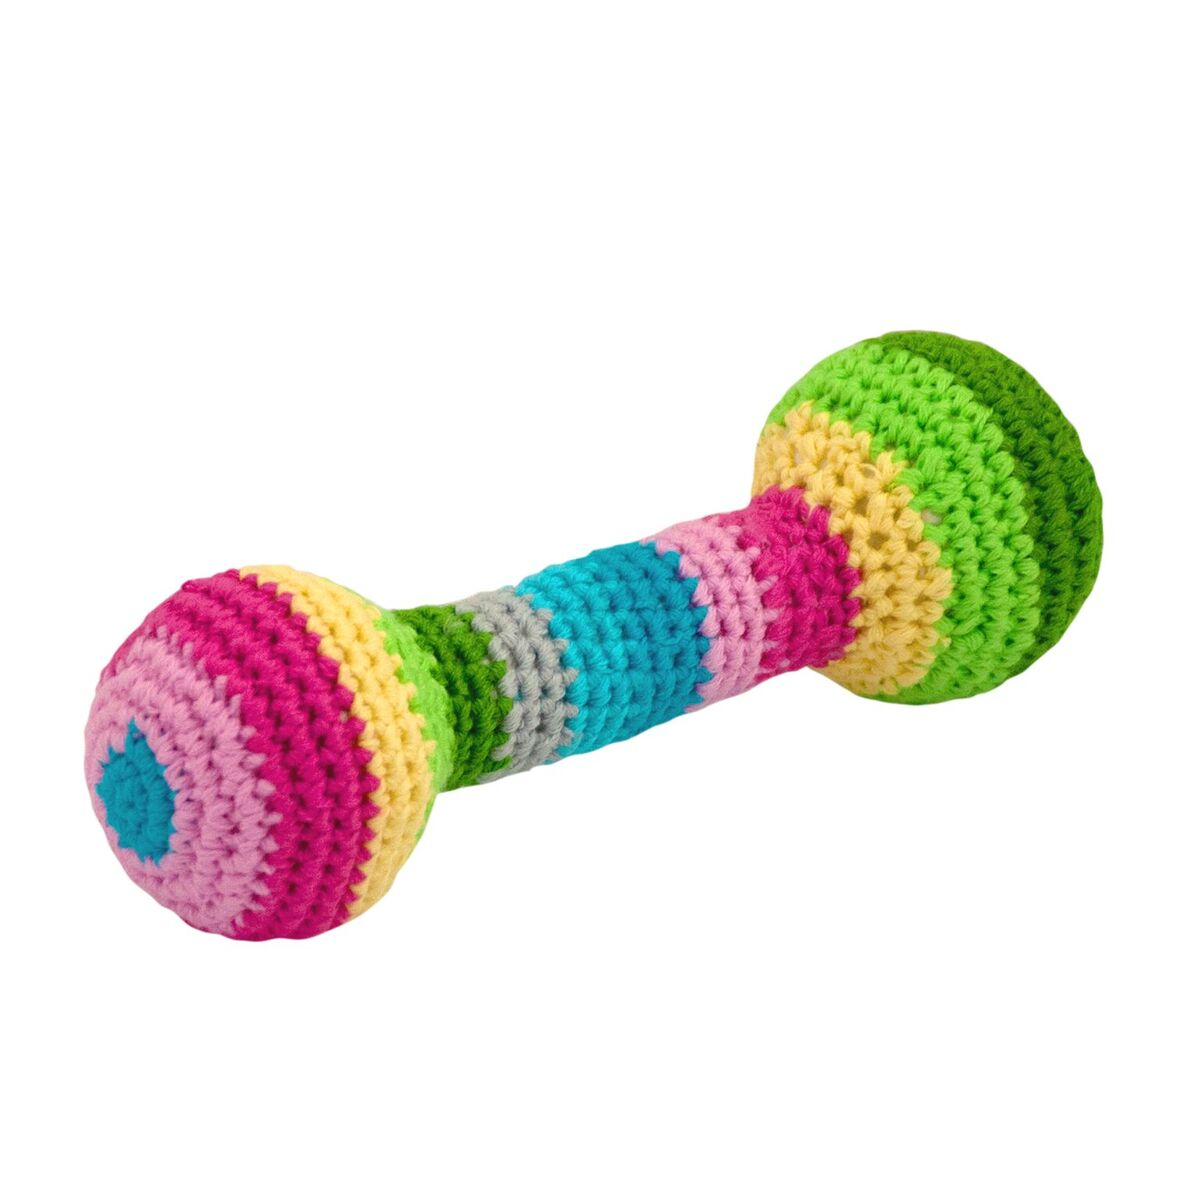 Natural Fiber Crocheted Chime Rattle - Crunch Natural Parenting is where to buy